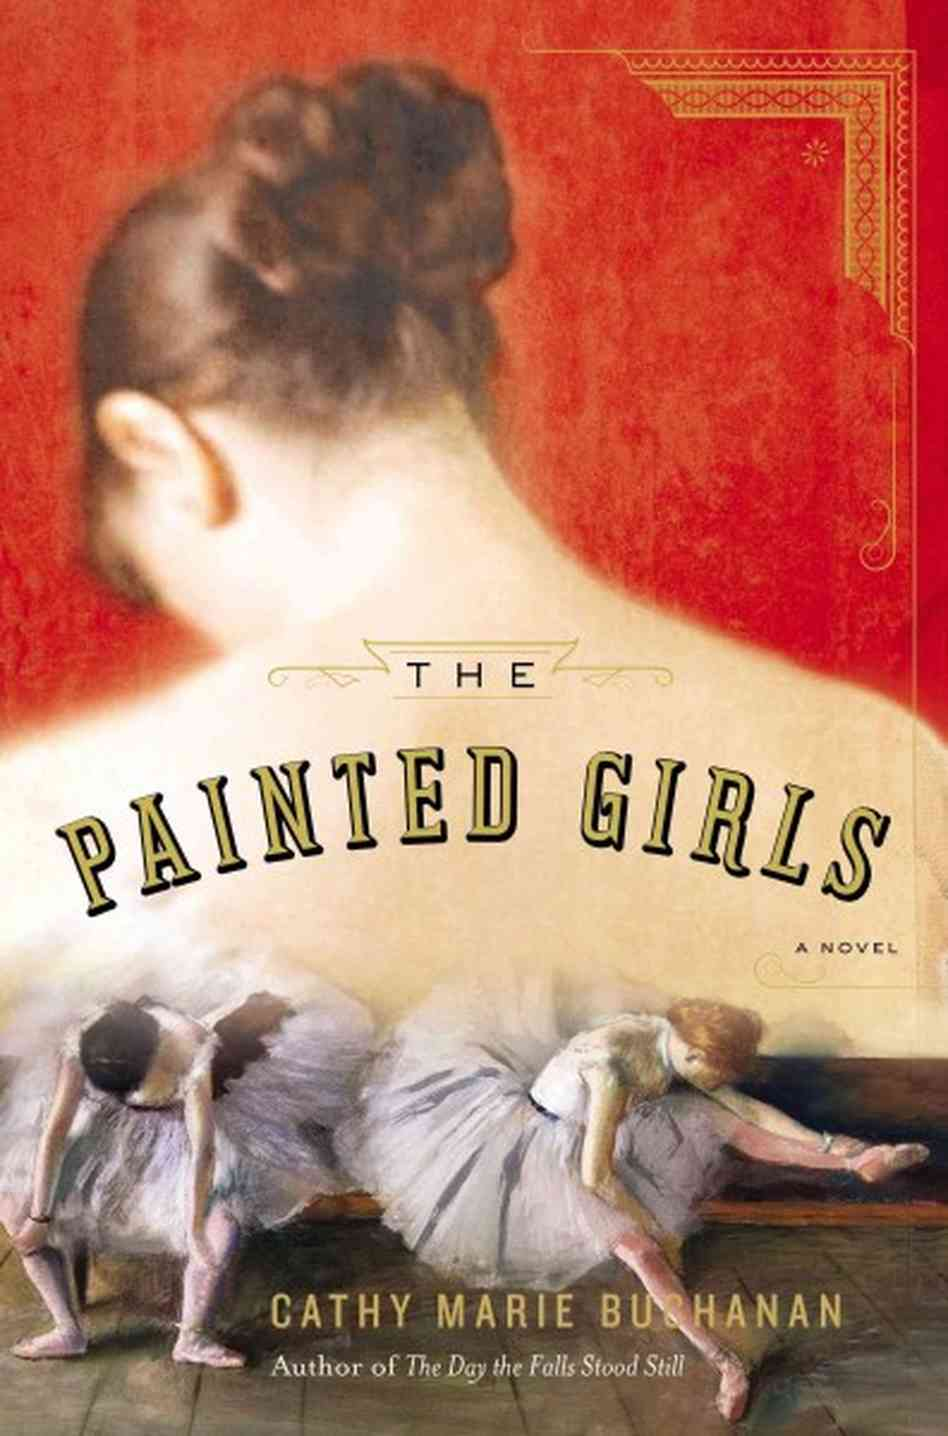 5 Books to Read About Art and Artists 5) The Painted Girls by Cathy Marie Buchanan